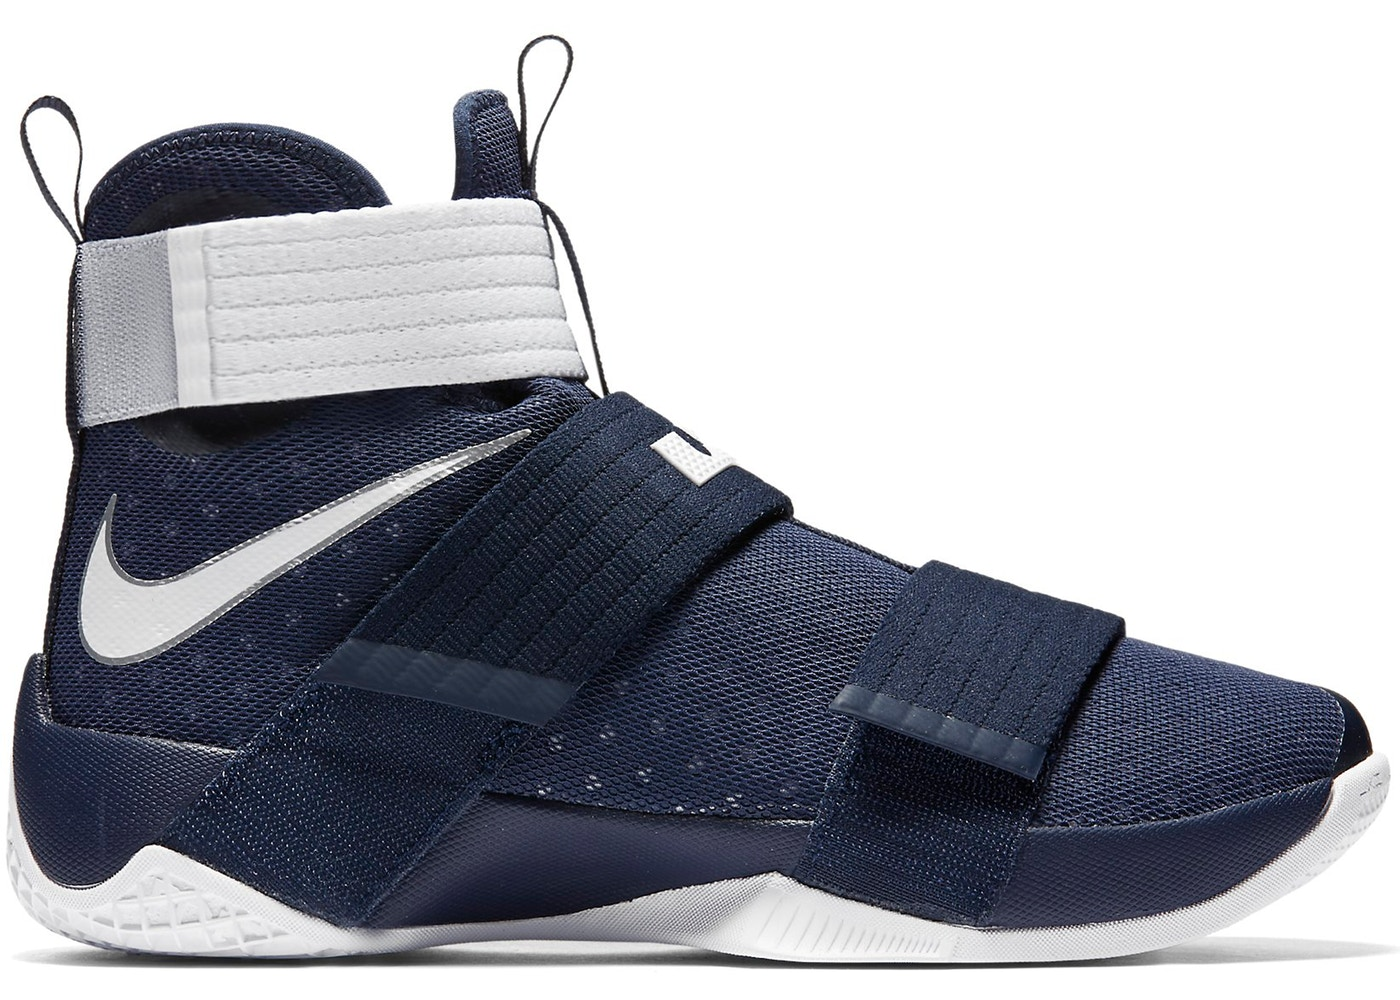 38fc63b083b LeBron Zoom Soldier 10 TB Midnight Navy - 844380-401